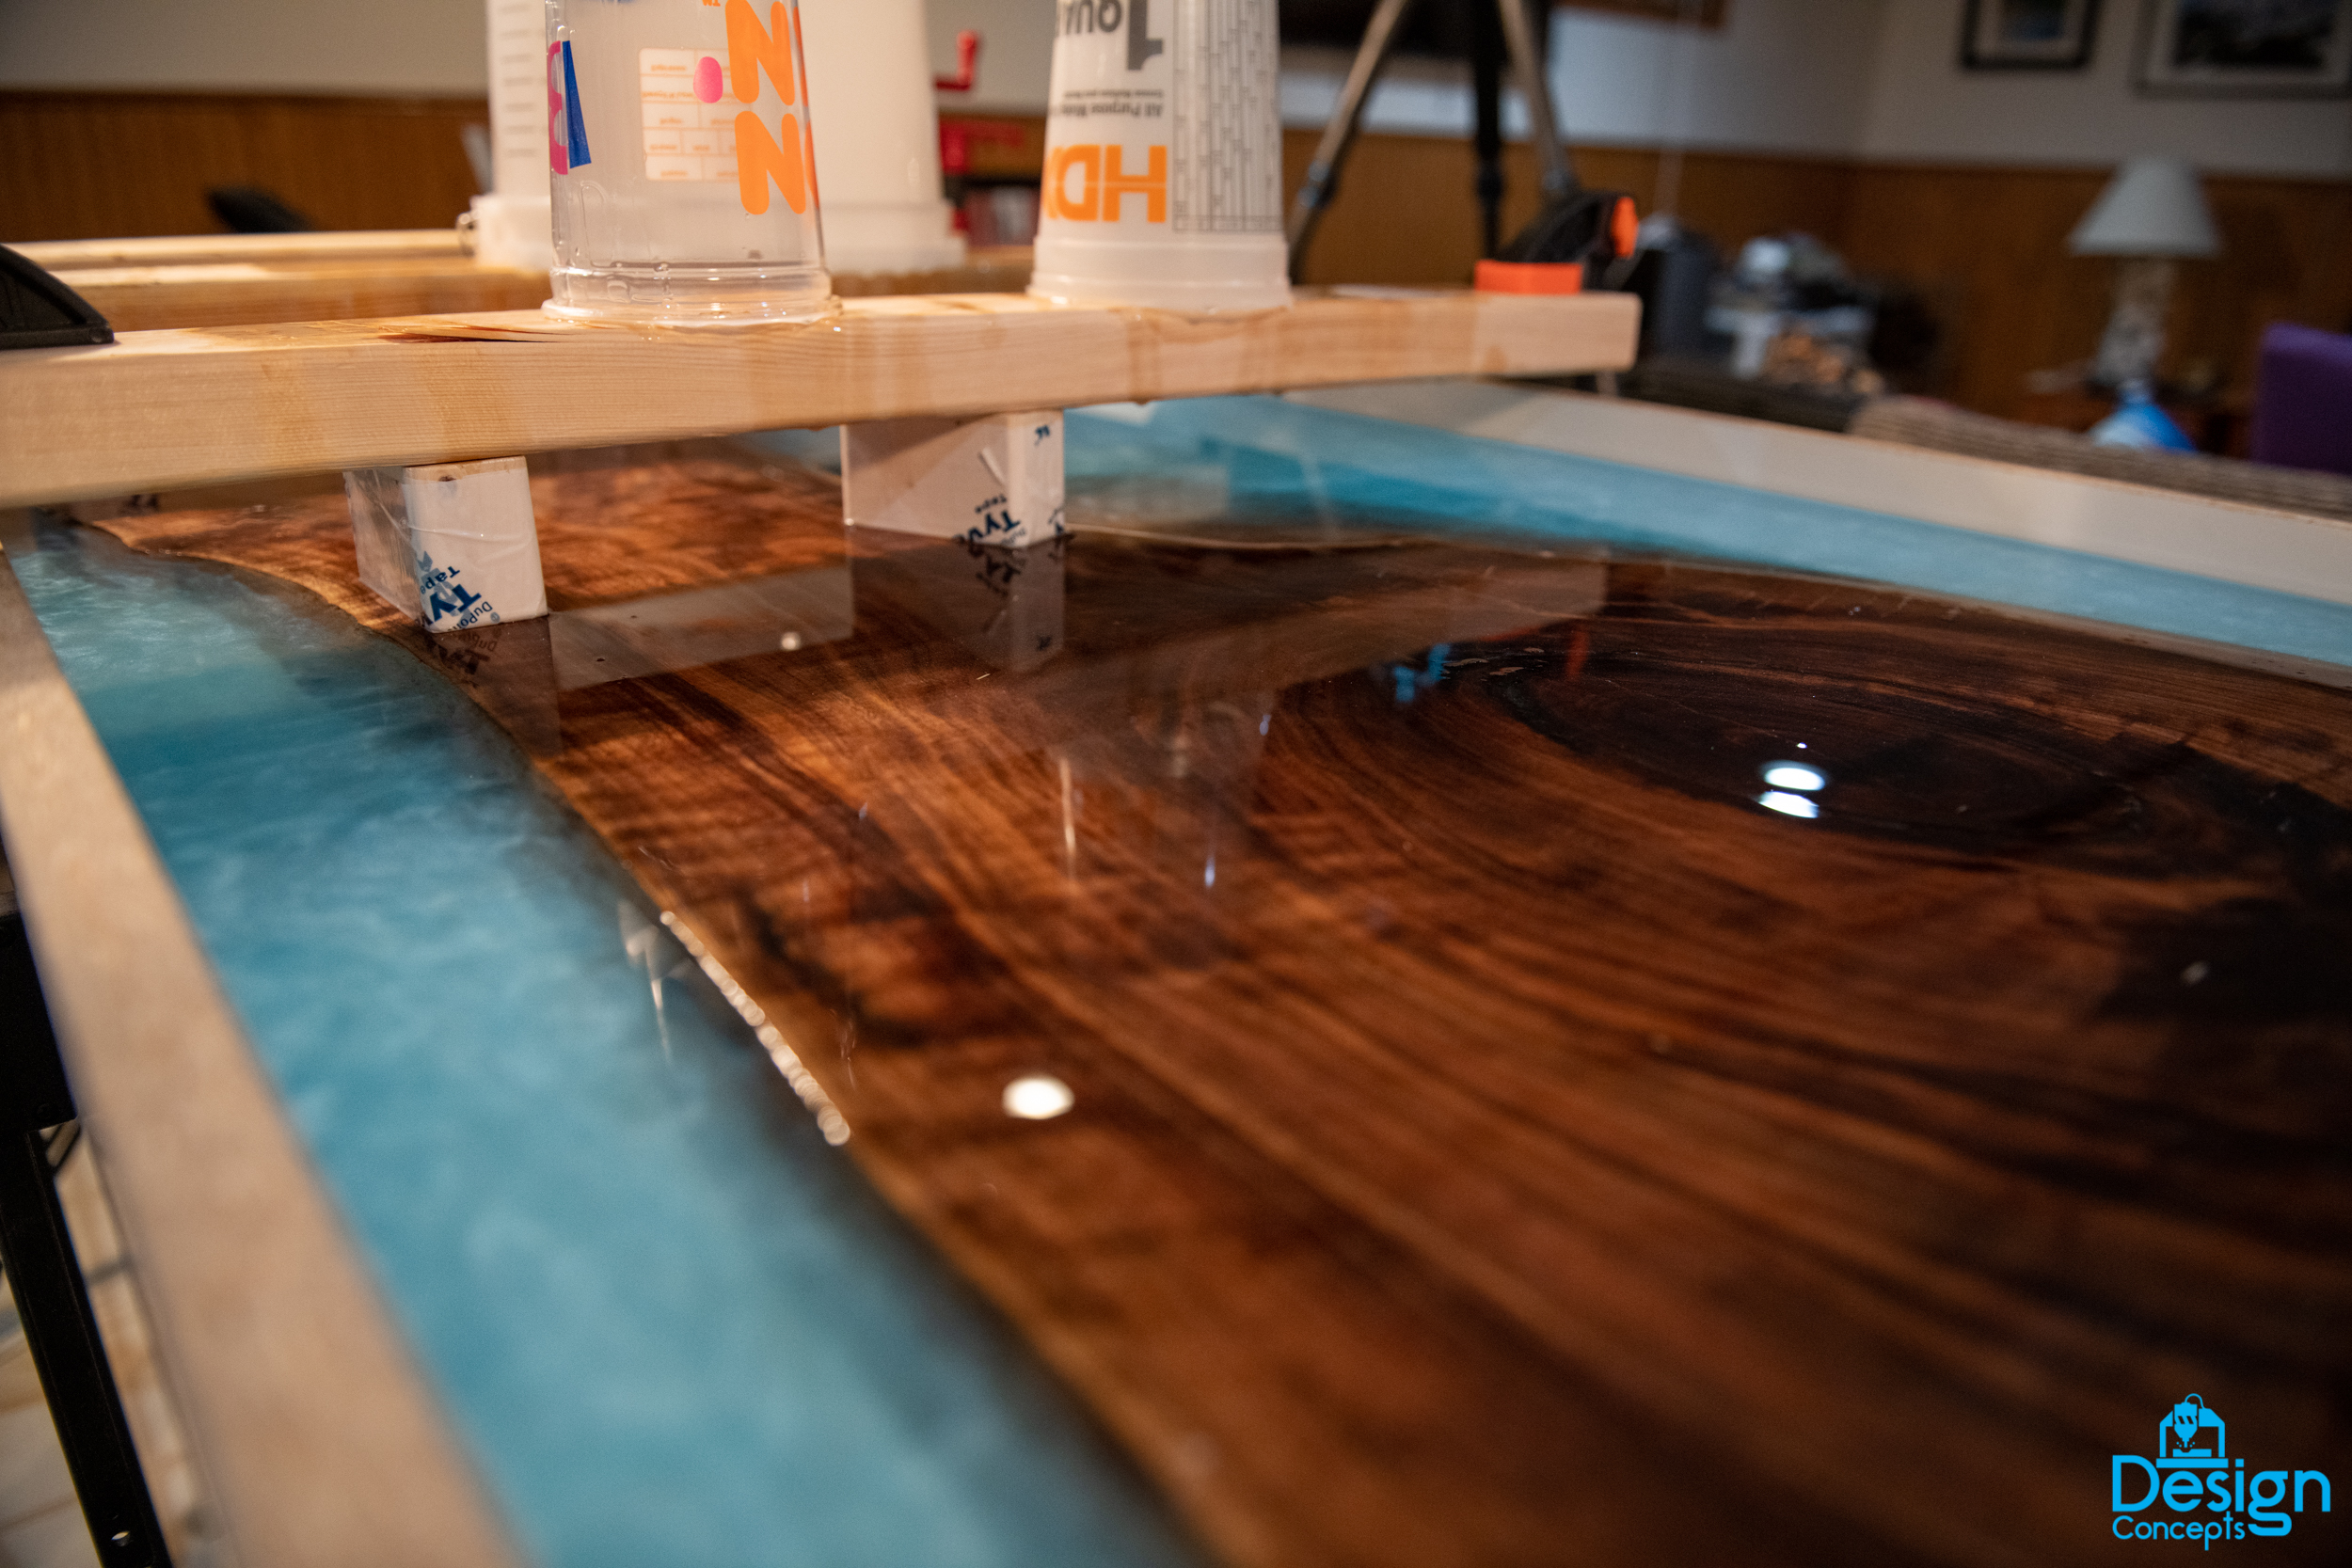 Epoxy Resin Table for Amy (7 of 10).jpg